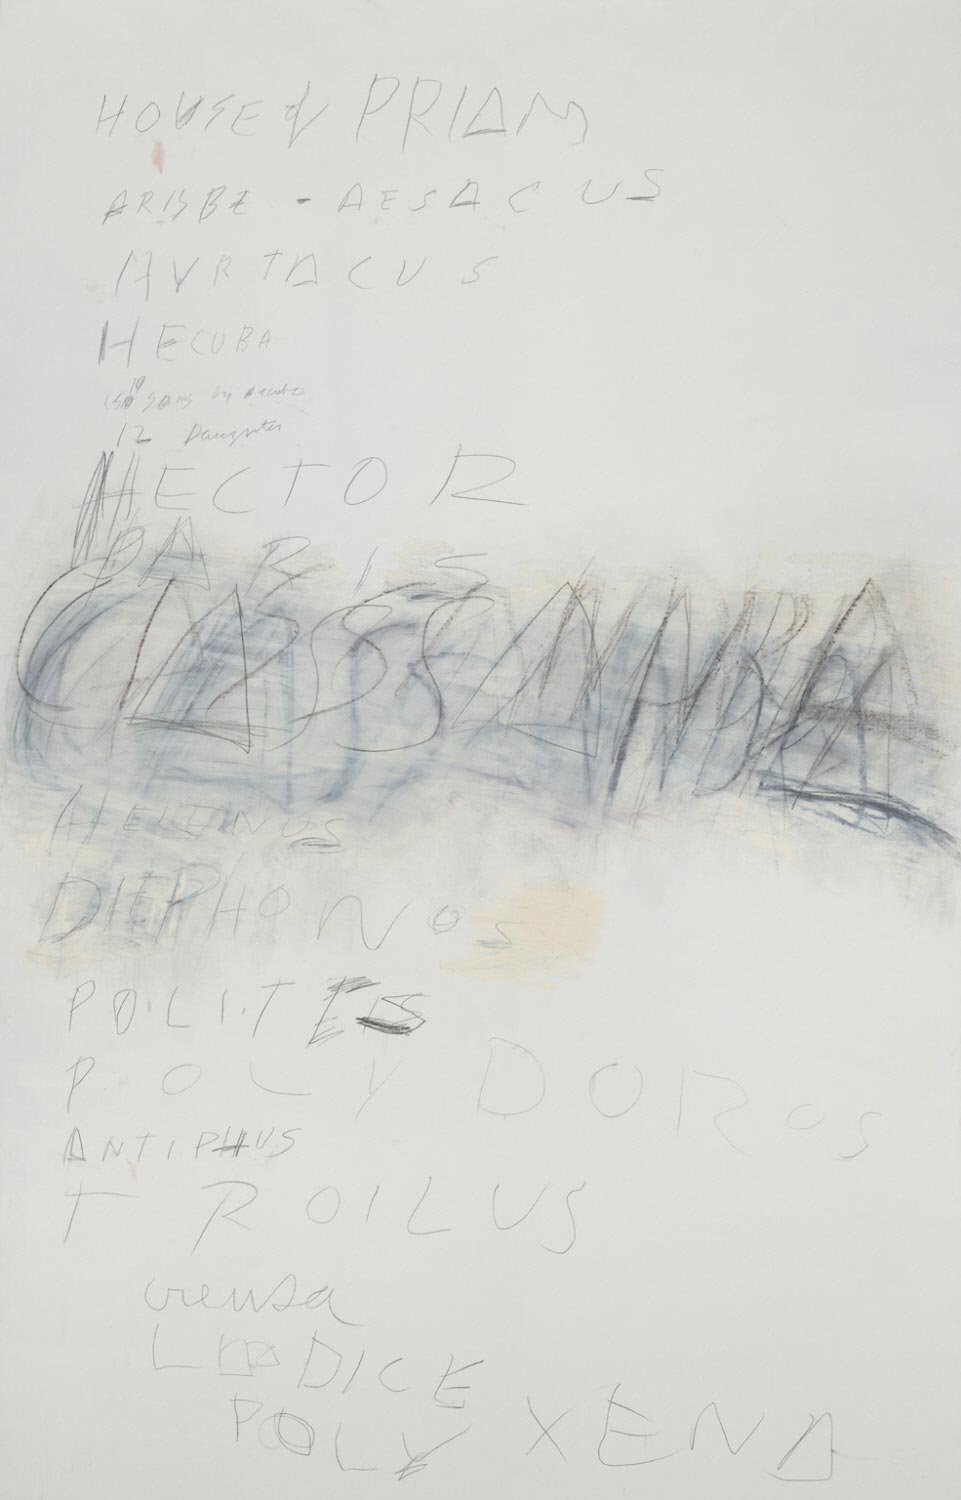 Cy Twombly, Fifty Days at Iliam: House of Priam